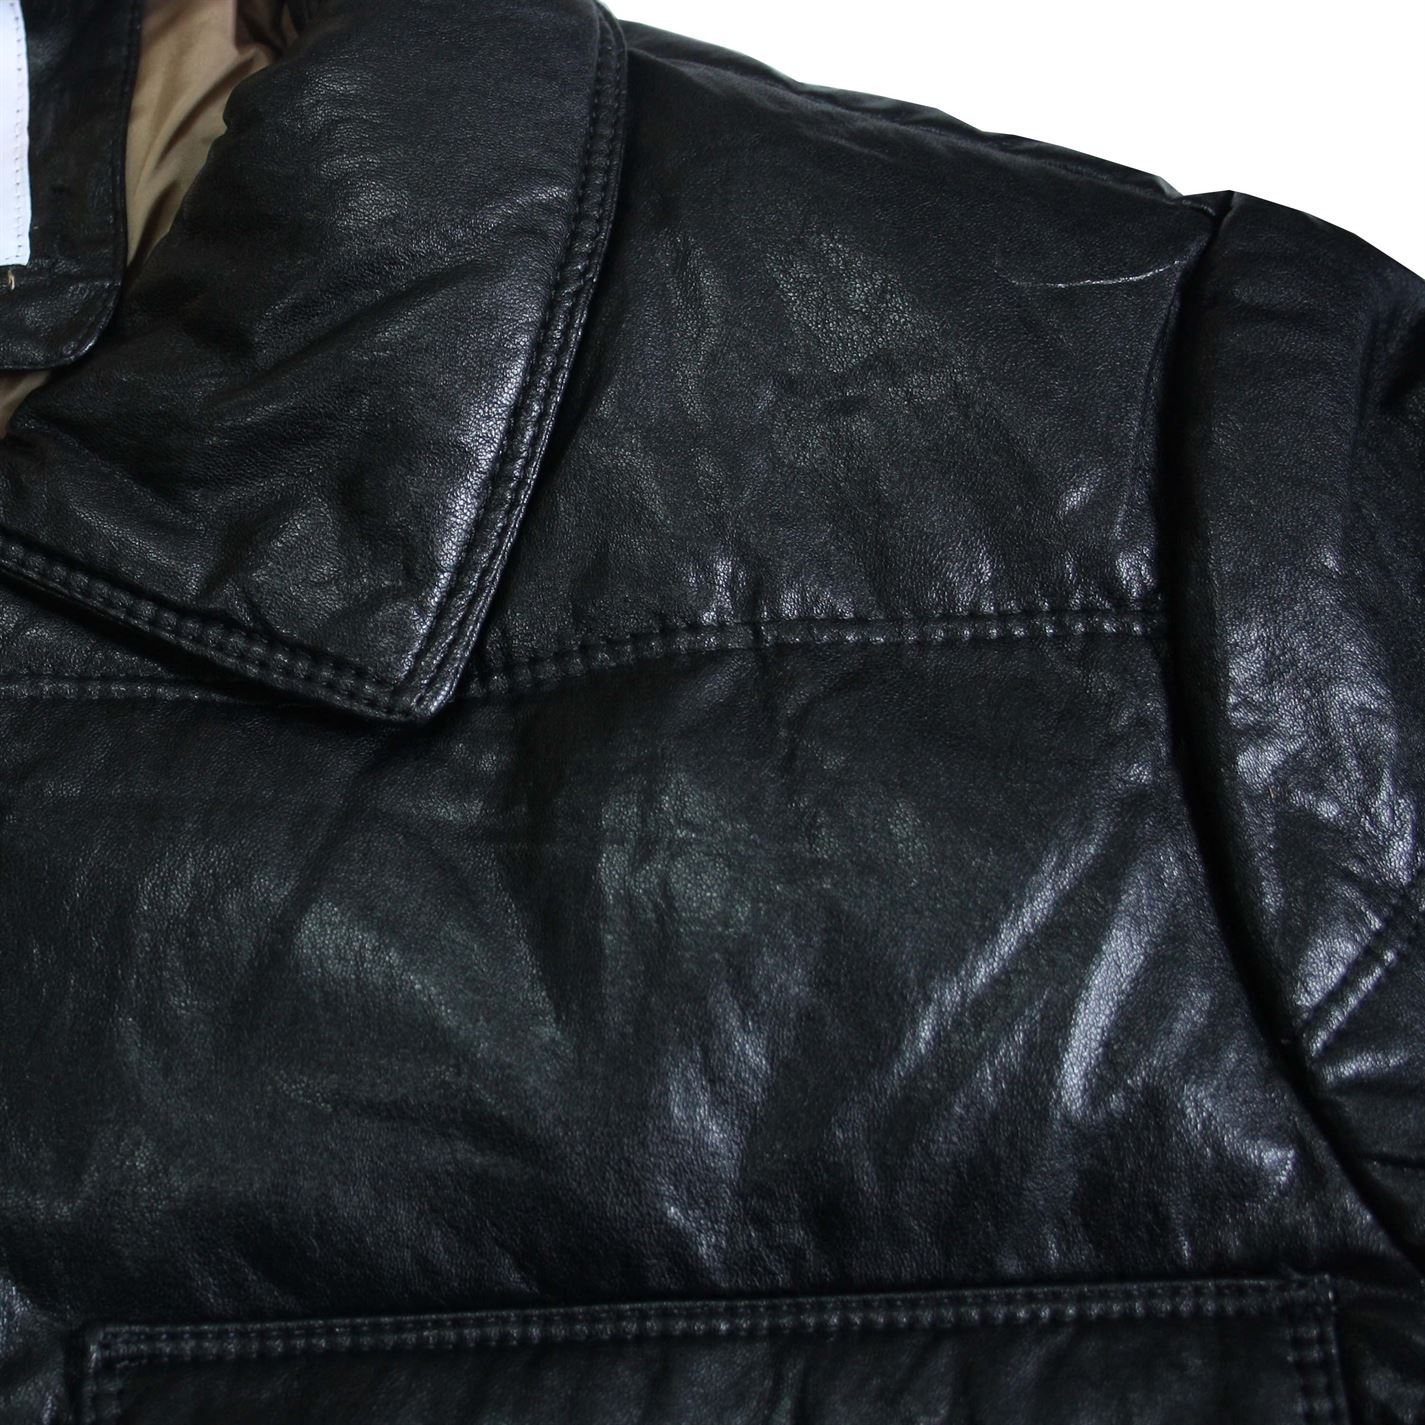 b2059b5f9 Details about Lee Cooper Mens PU Down Jacket Leather Coat Top Zip Full  Winter Warm Popper